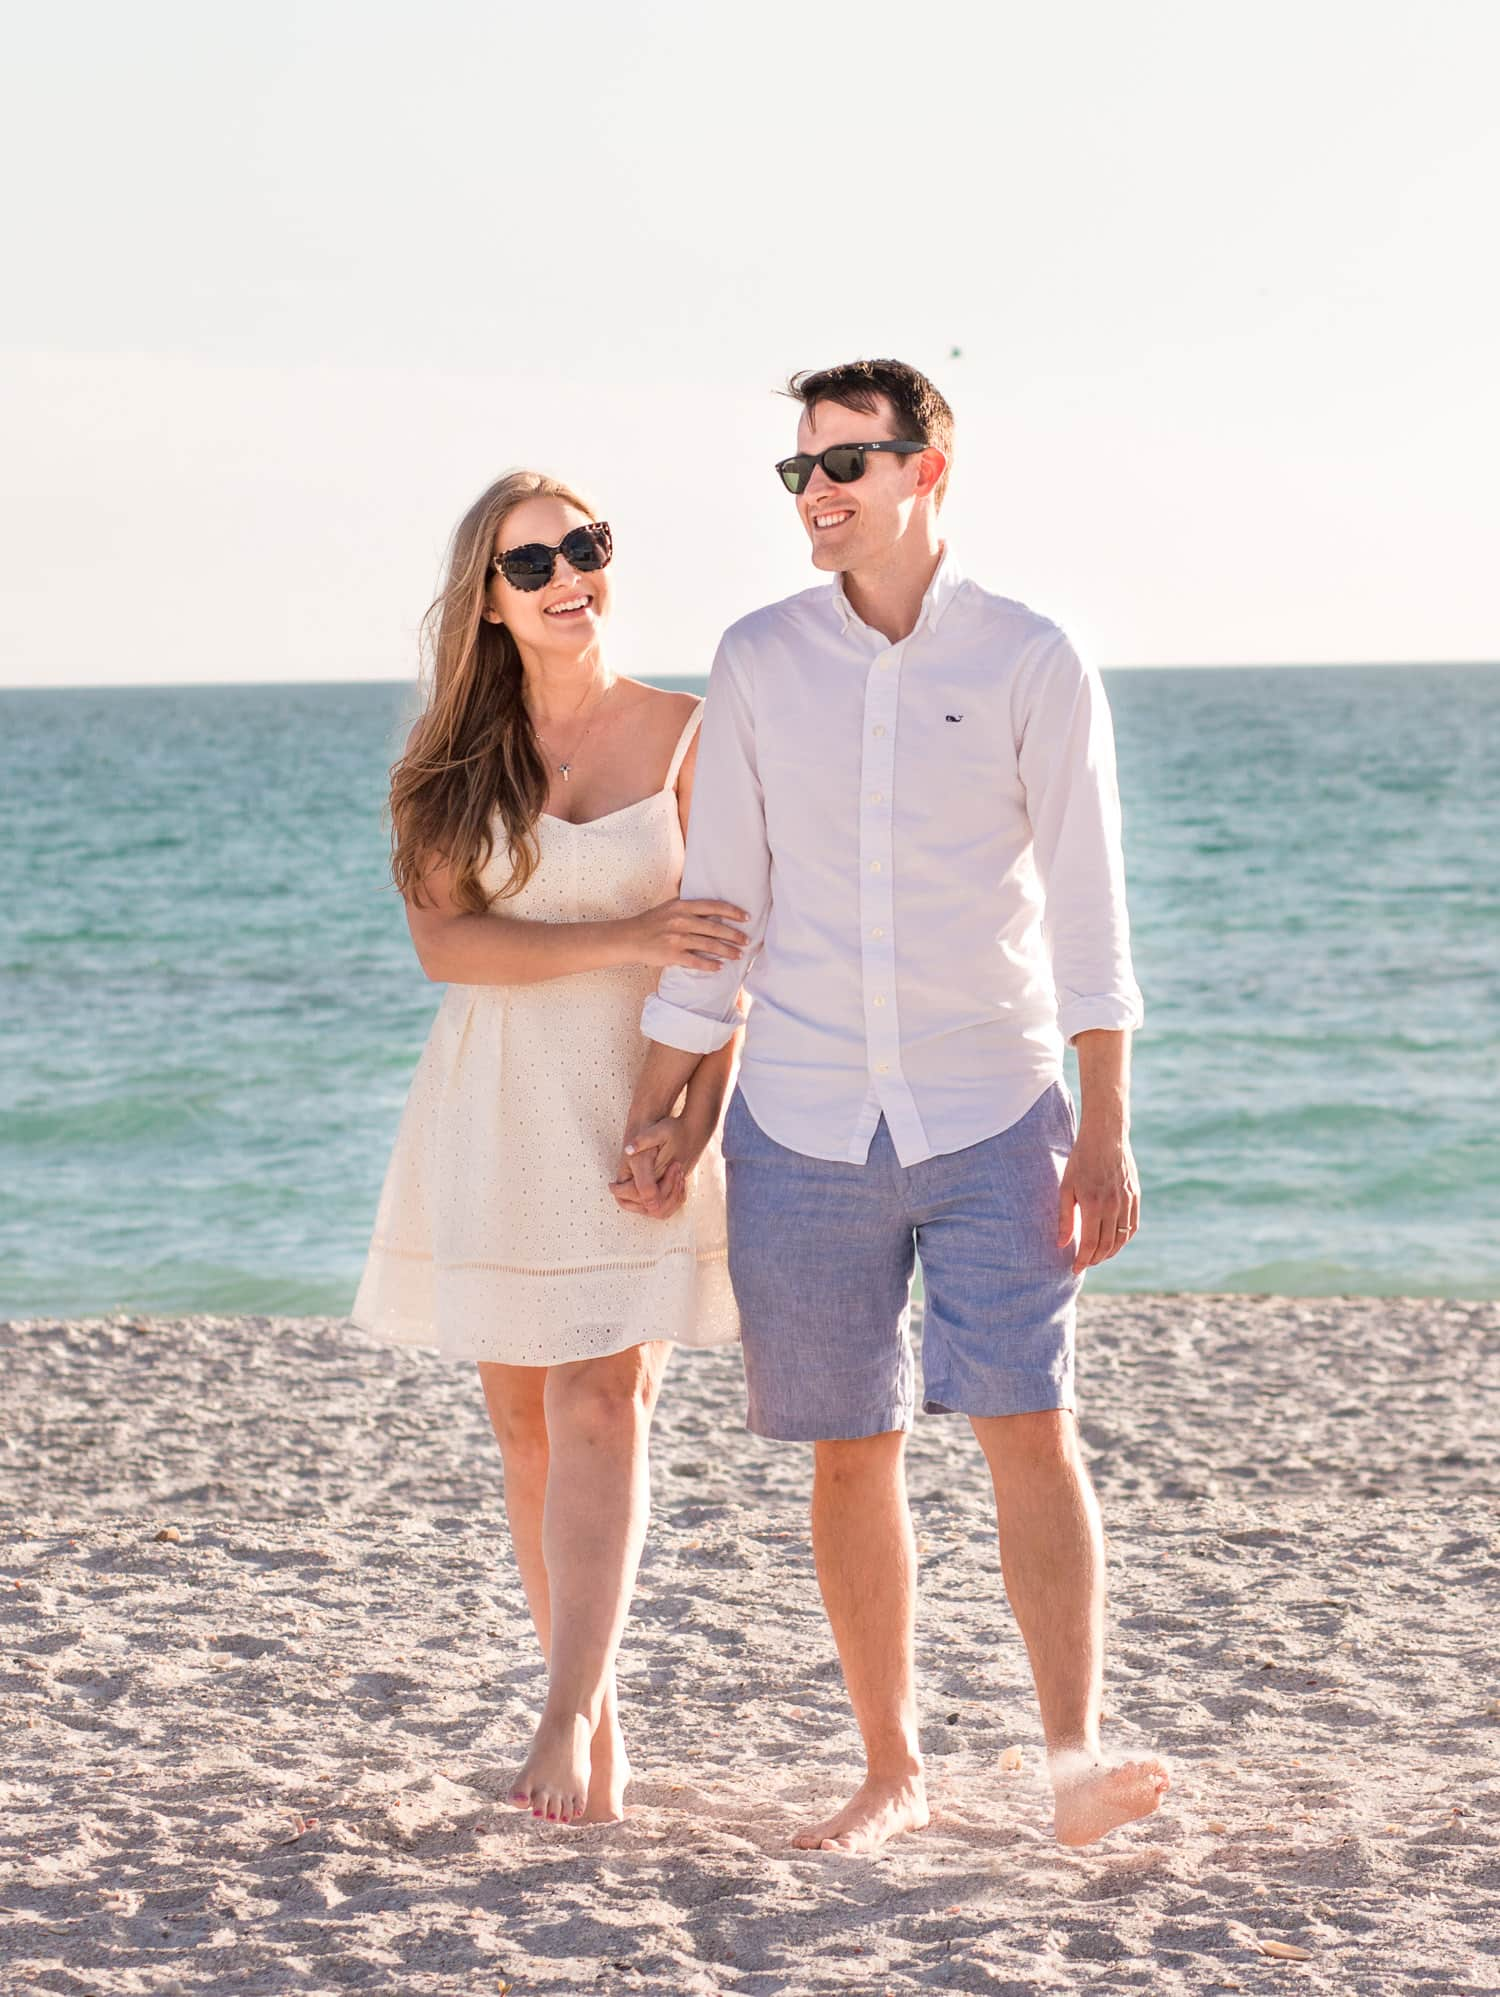 Romantic Weekend Getaway for Couples in Longboat Key